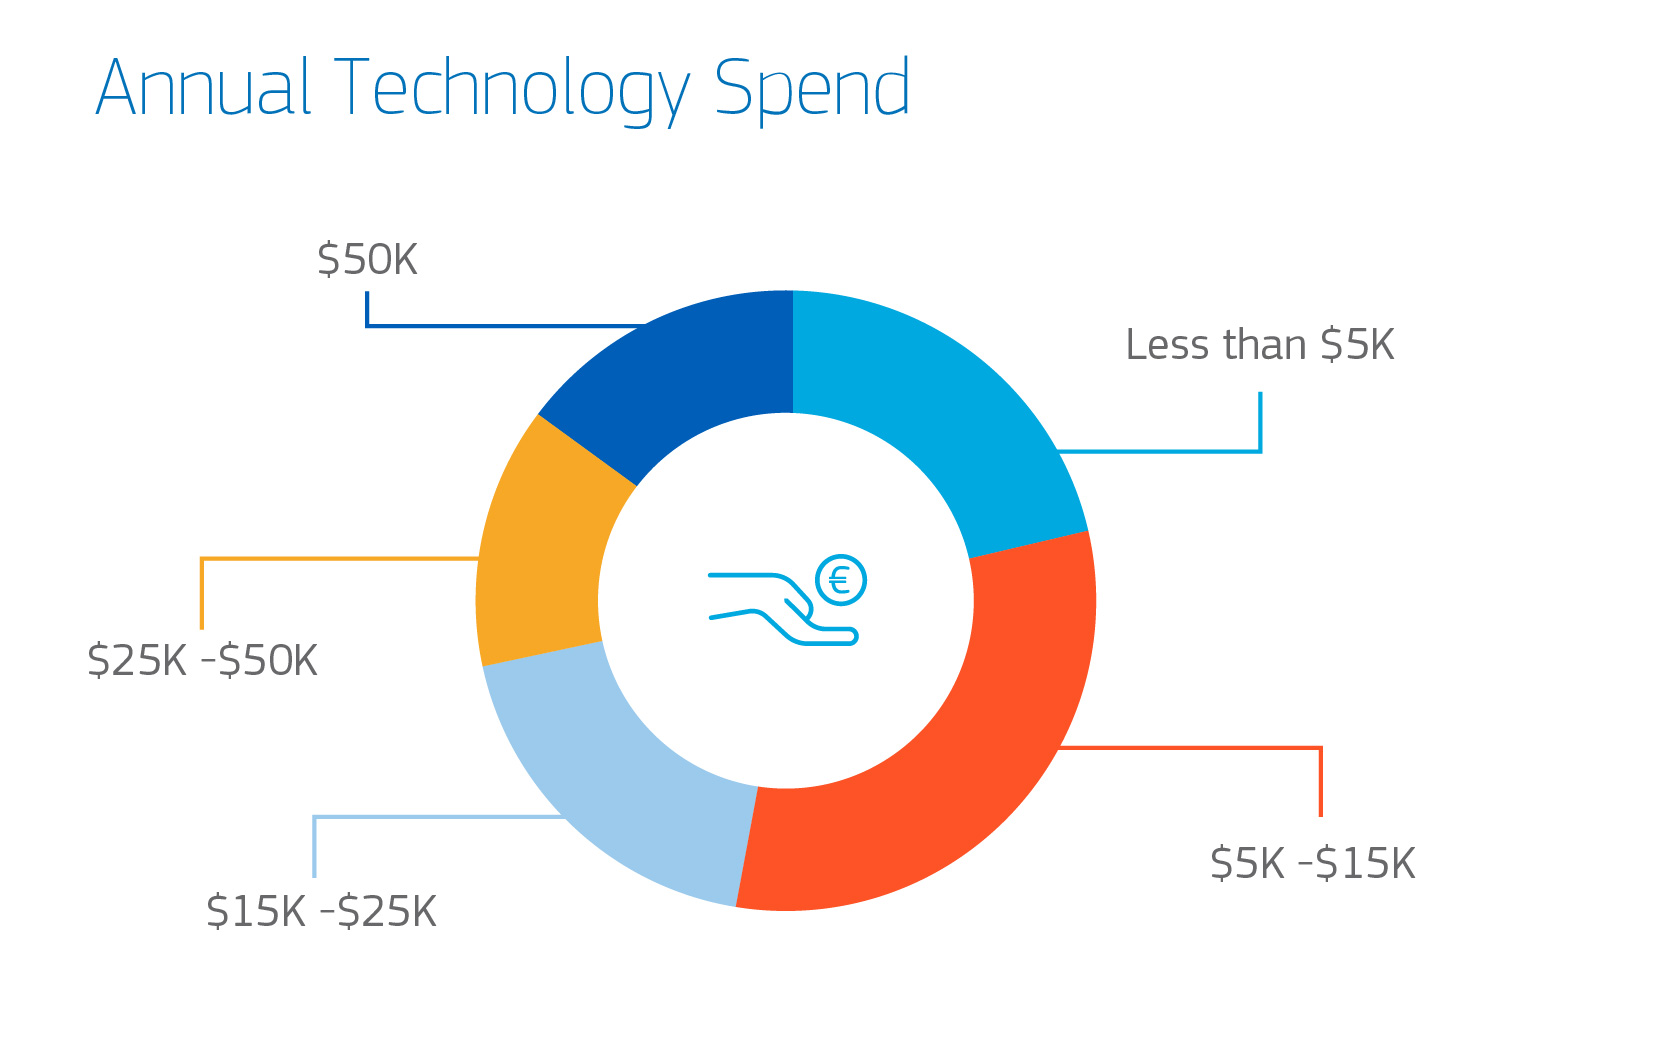 Annual Technology Spend